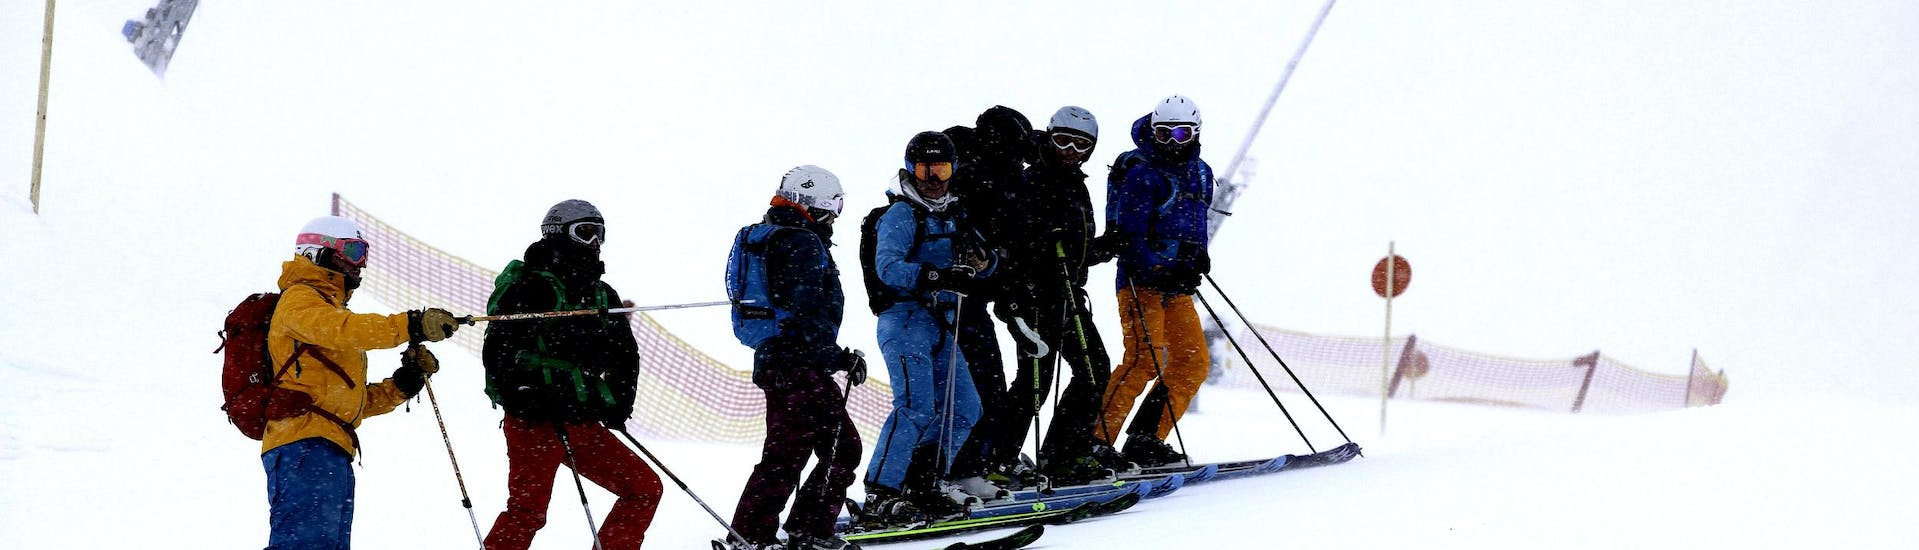 Private Ski Lessons for Adults in Sinswang - All Levels met Skischule Oberstaufen - Hero image